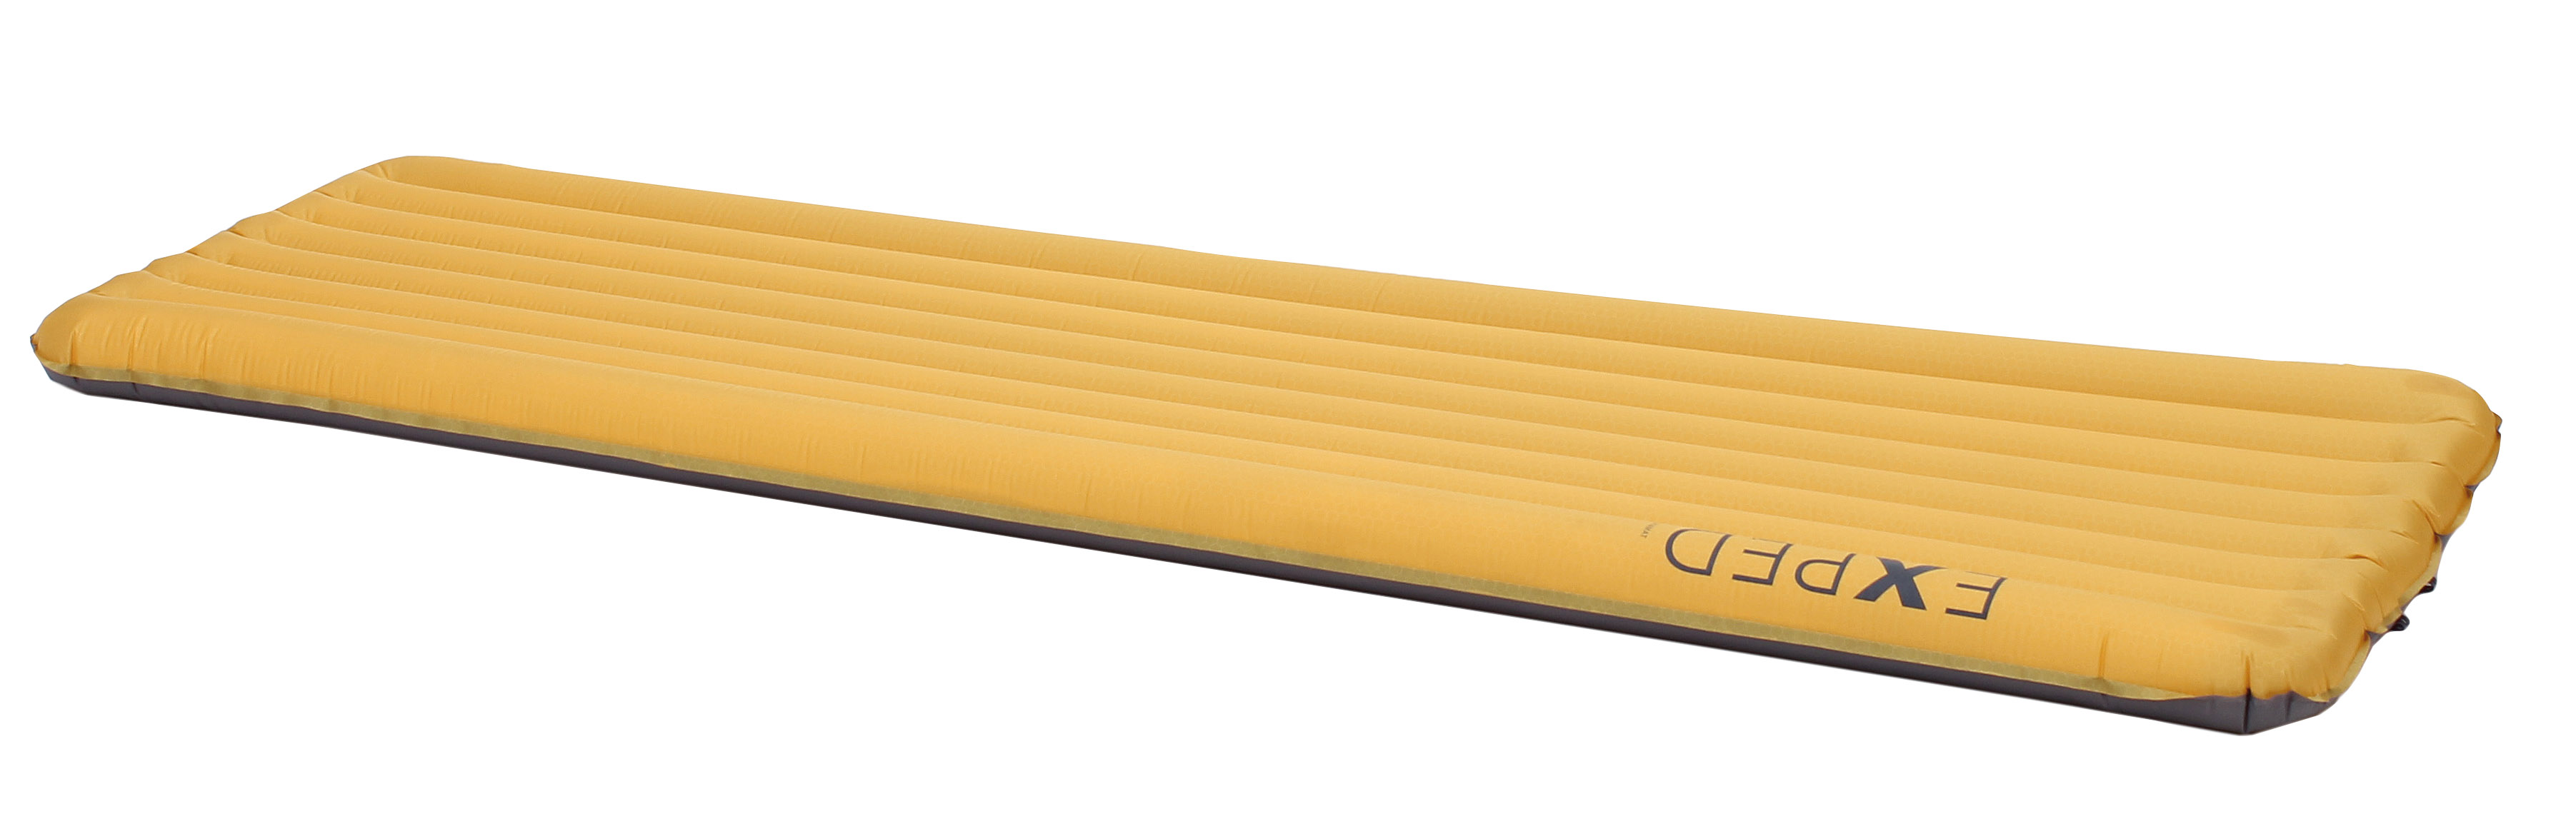 Exped Synmat Ul 7m Sleeping Mat Review Glenmore Lodge